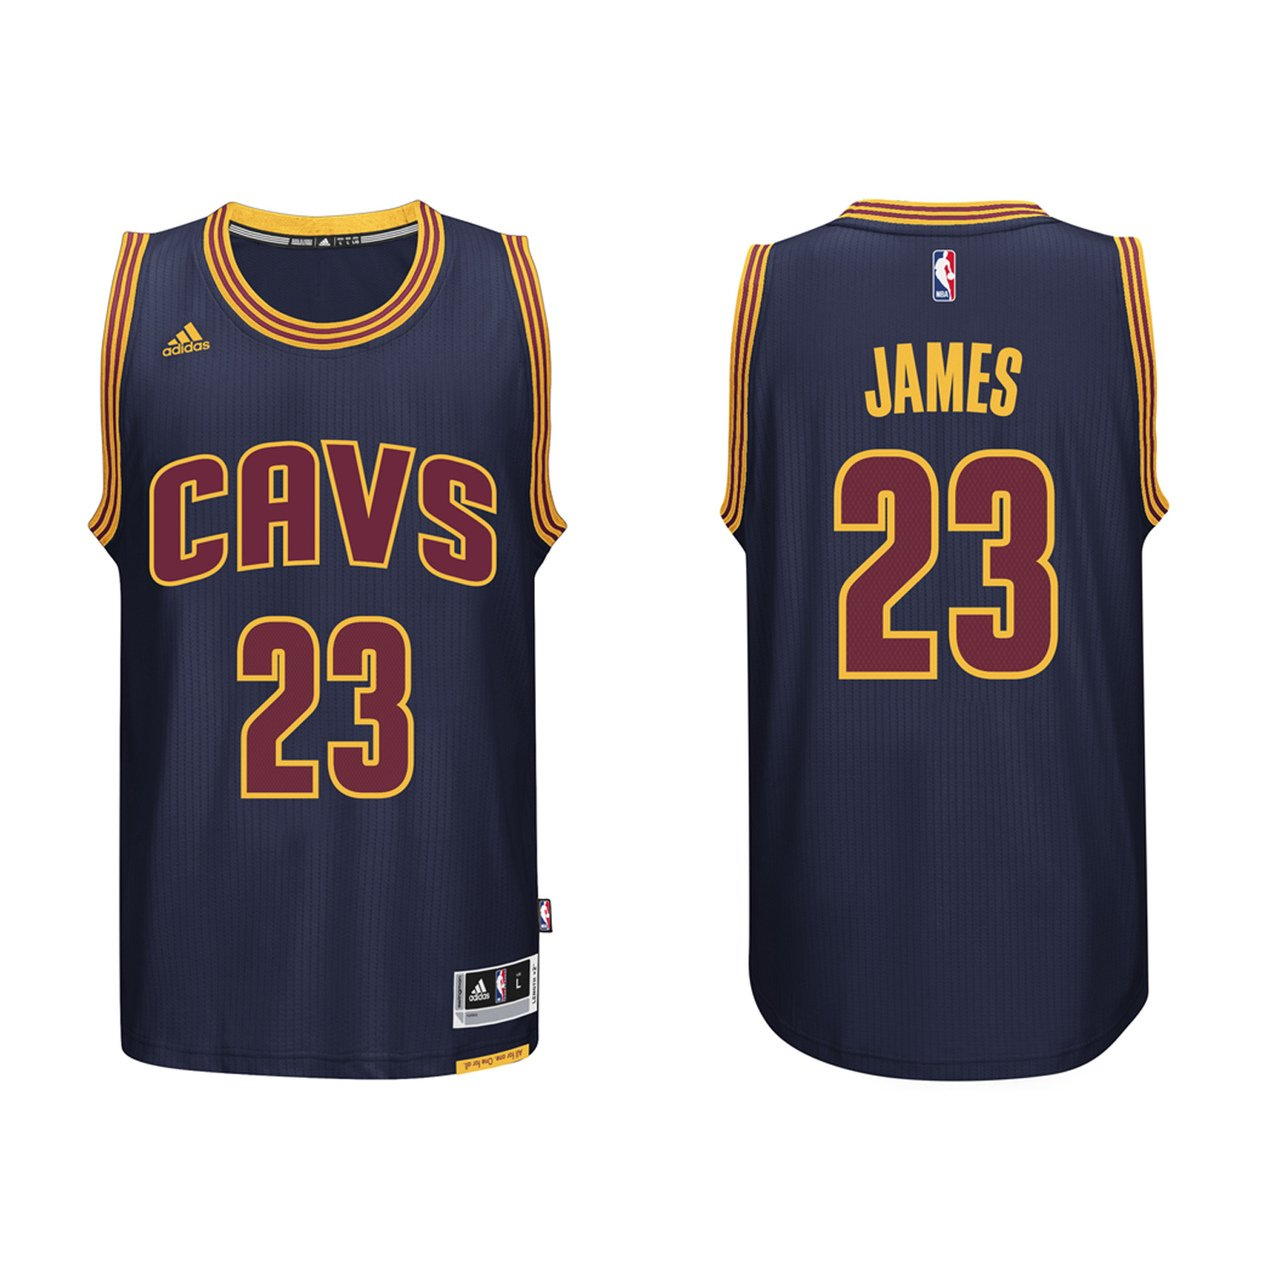 super popular 331f1 b05e8 adidas Lebron James Men's Navy Cleveland Cavaliers Swingman Jersey